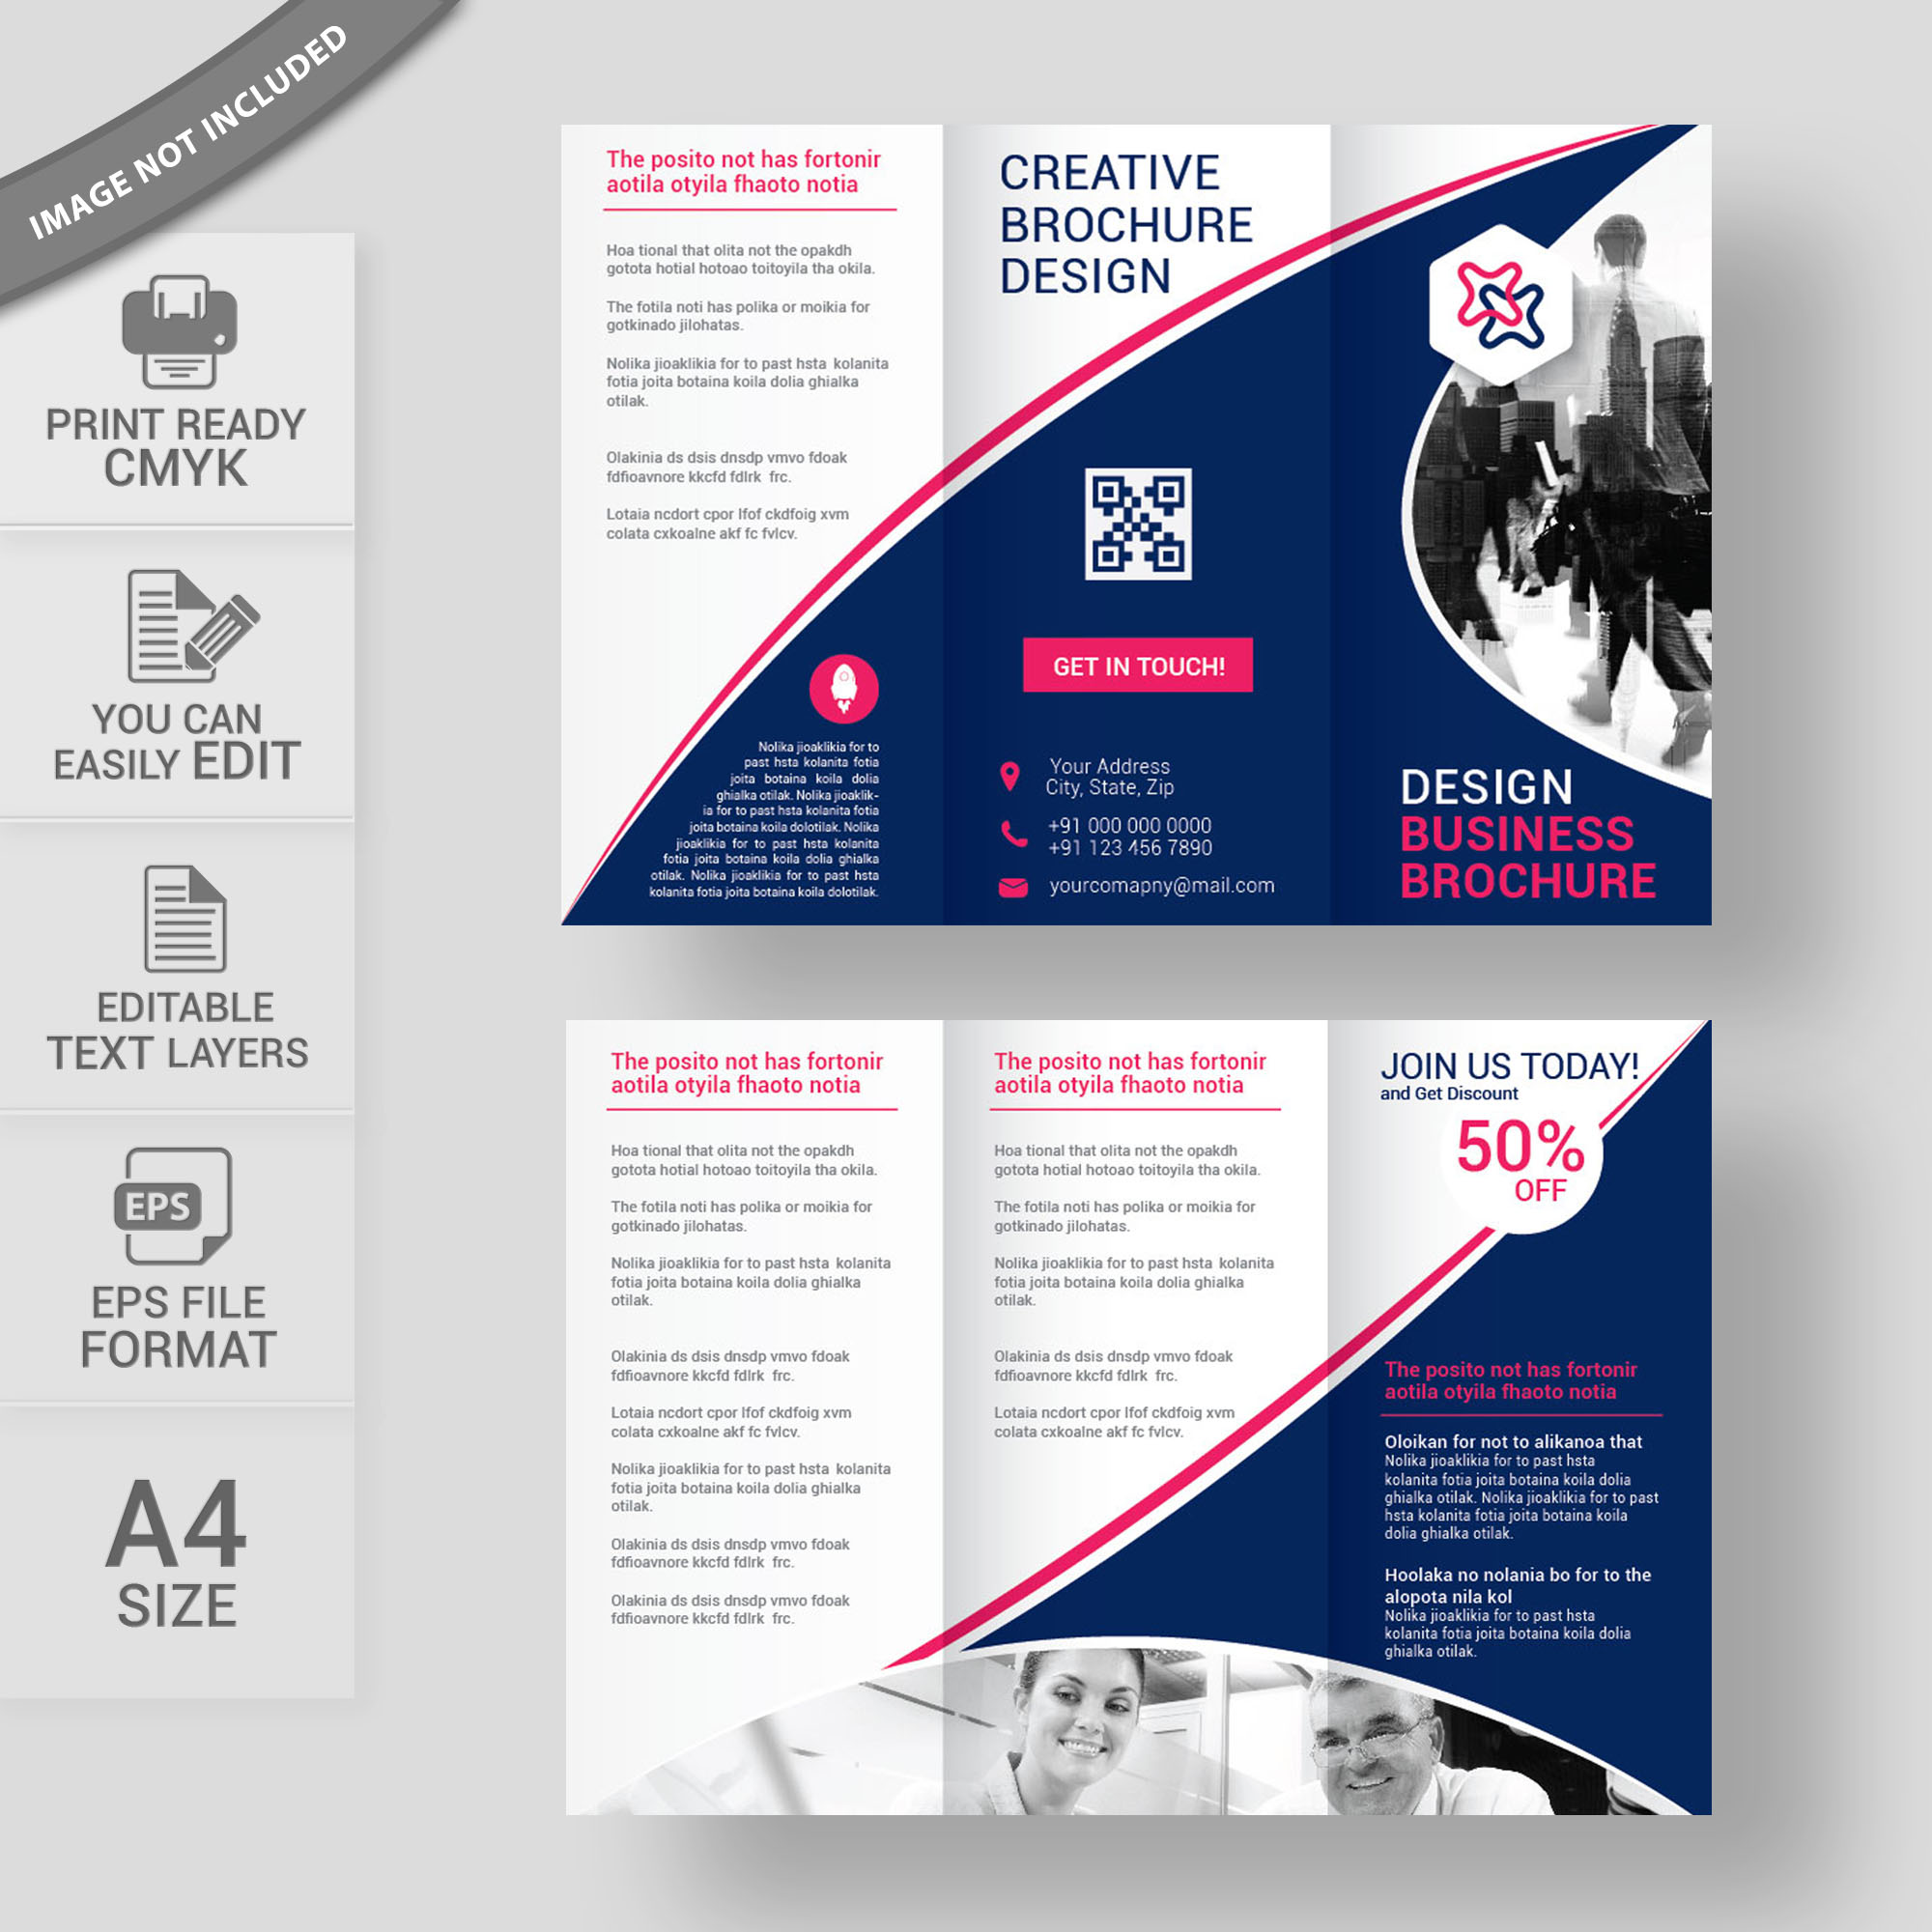 Corporate Tri Fold Brochure Template Free Download Wisxicom - Tri fold brochure templates free download